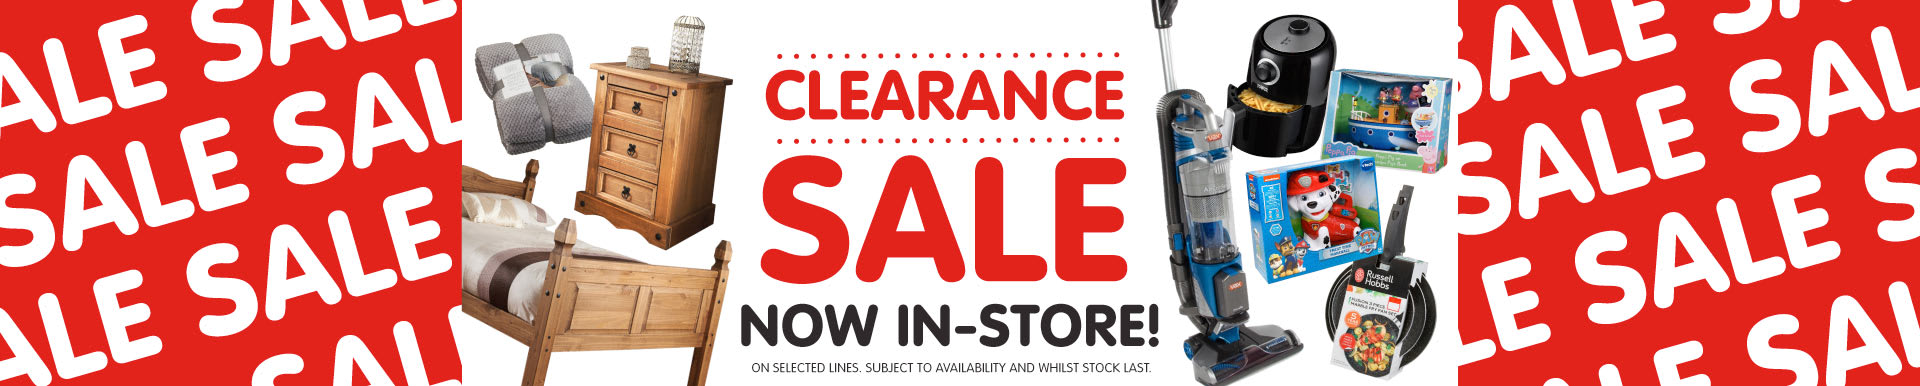 B&M Sale Now In-store.